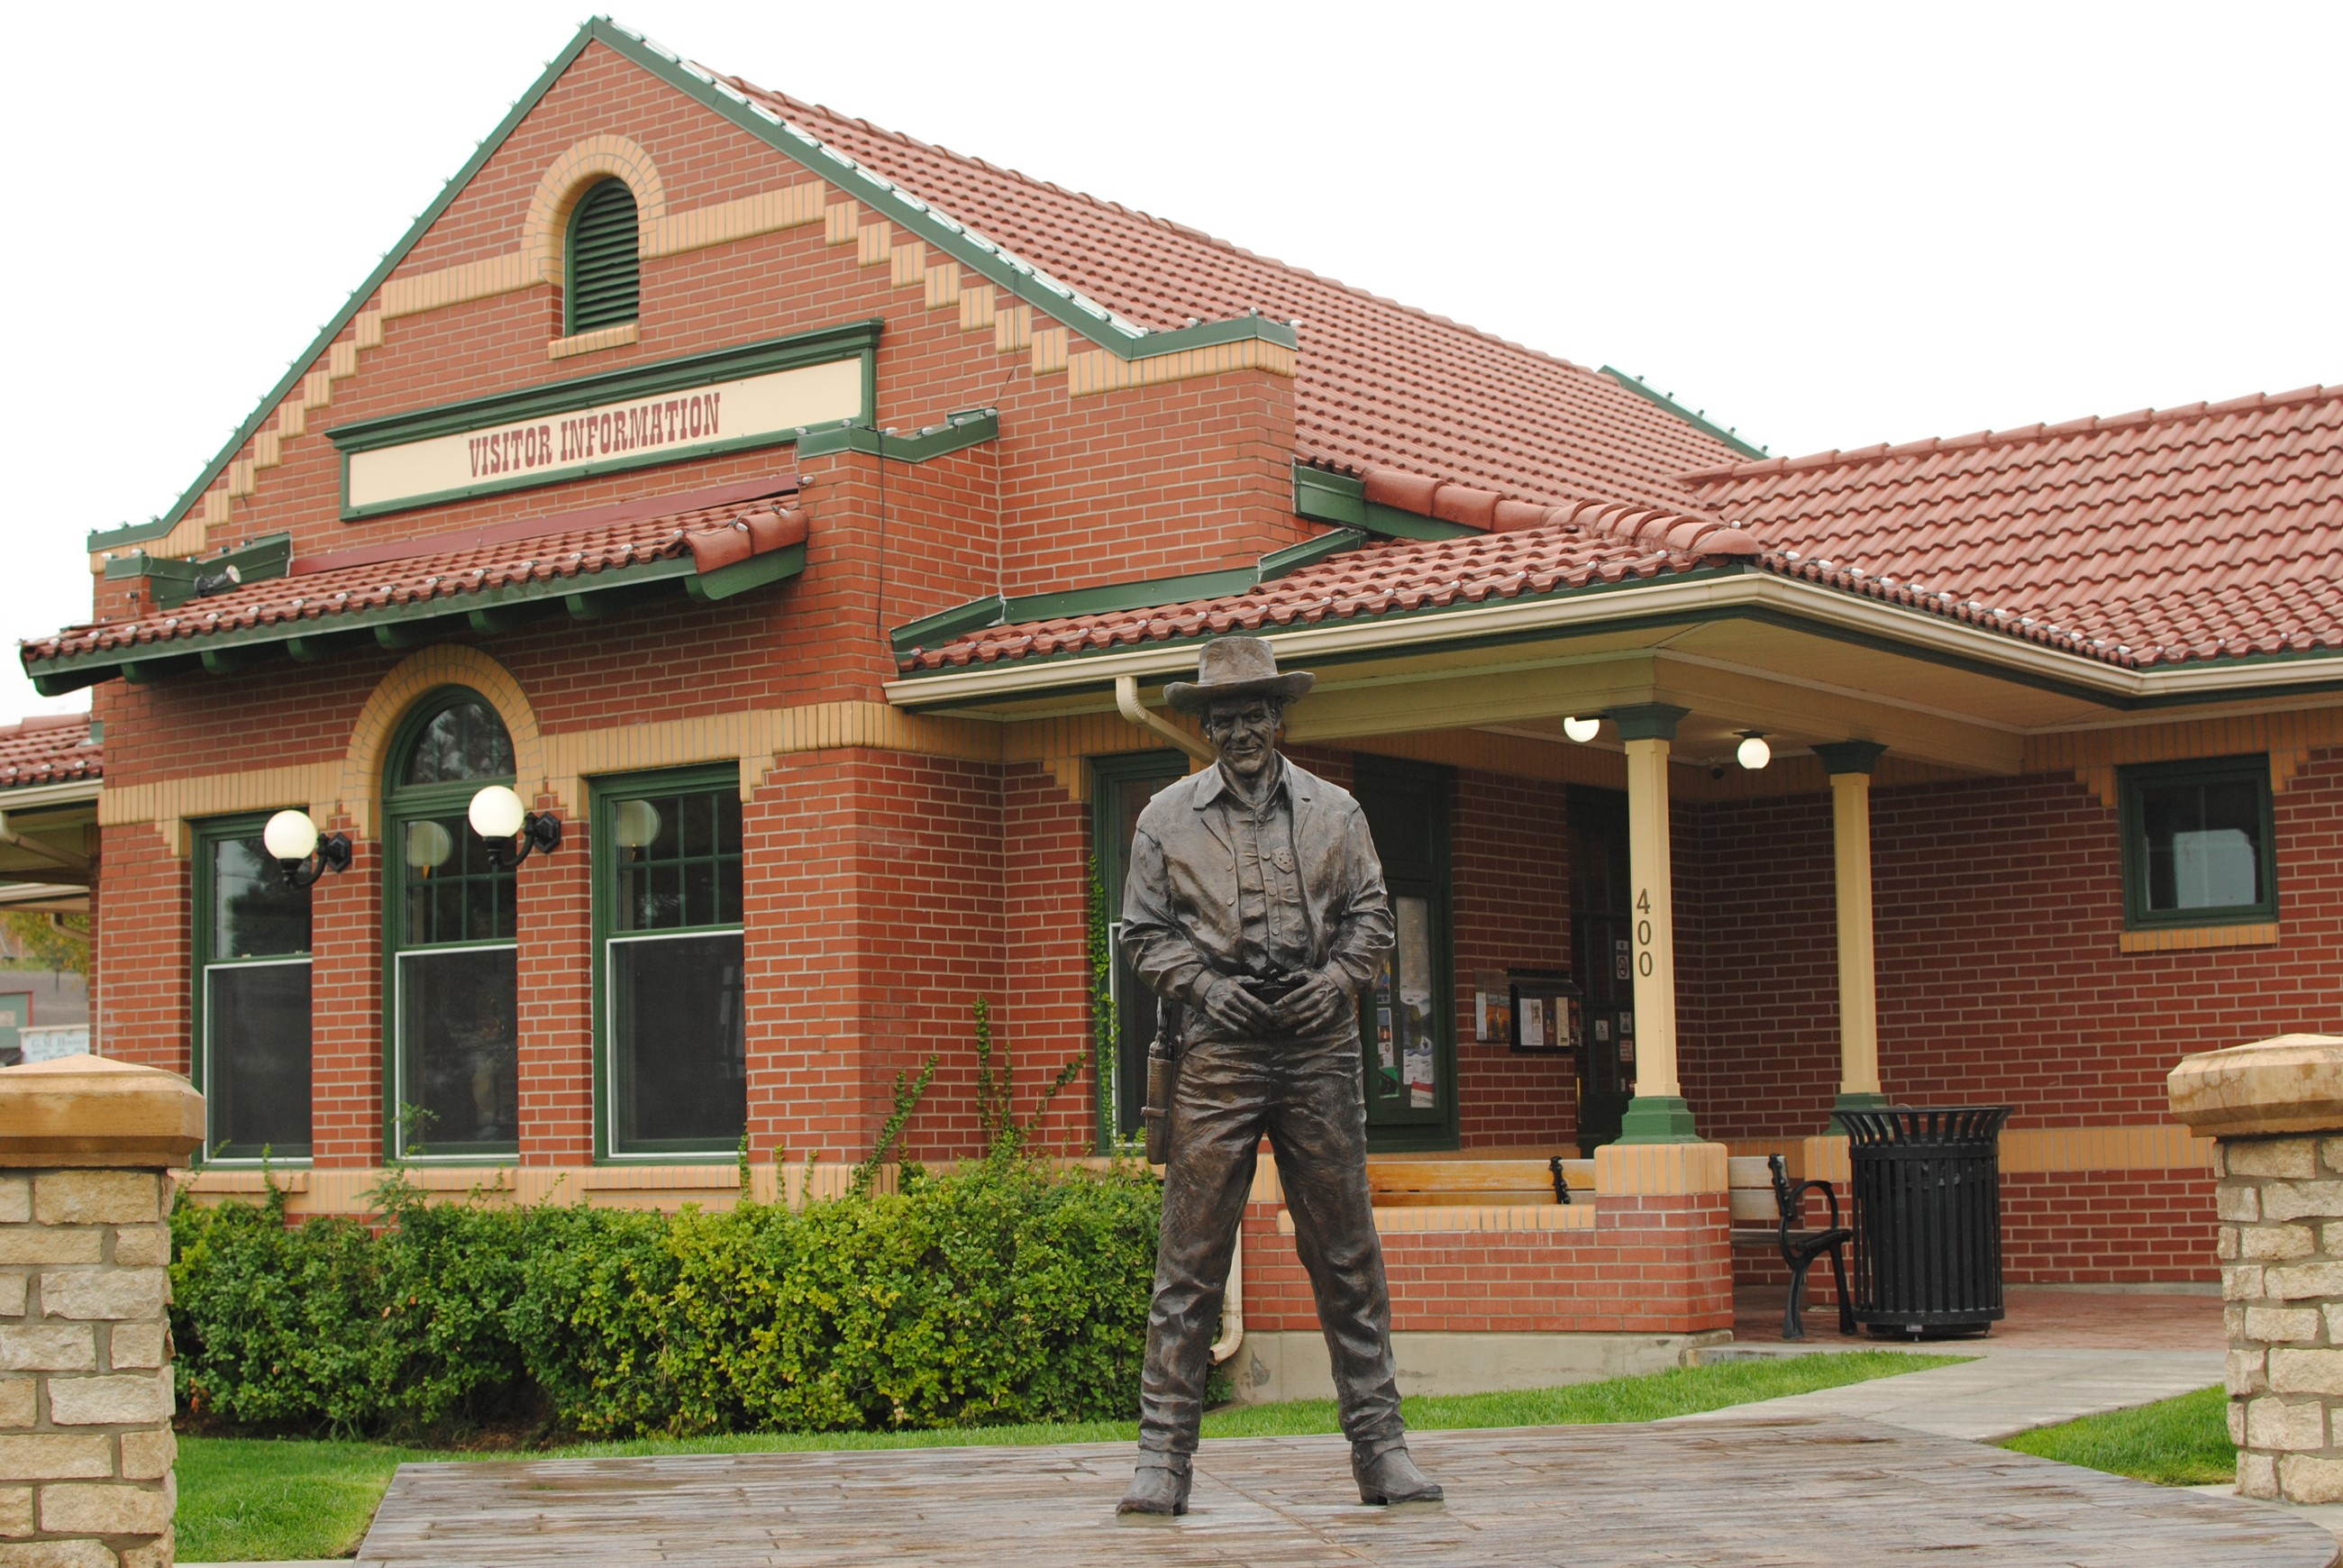 Statue in front of Visitor Center Building